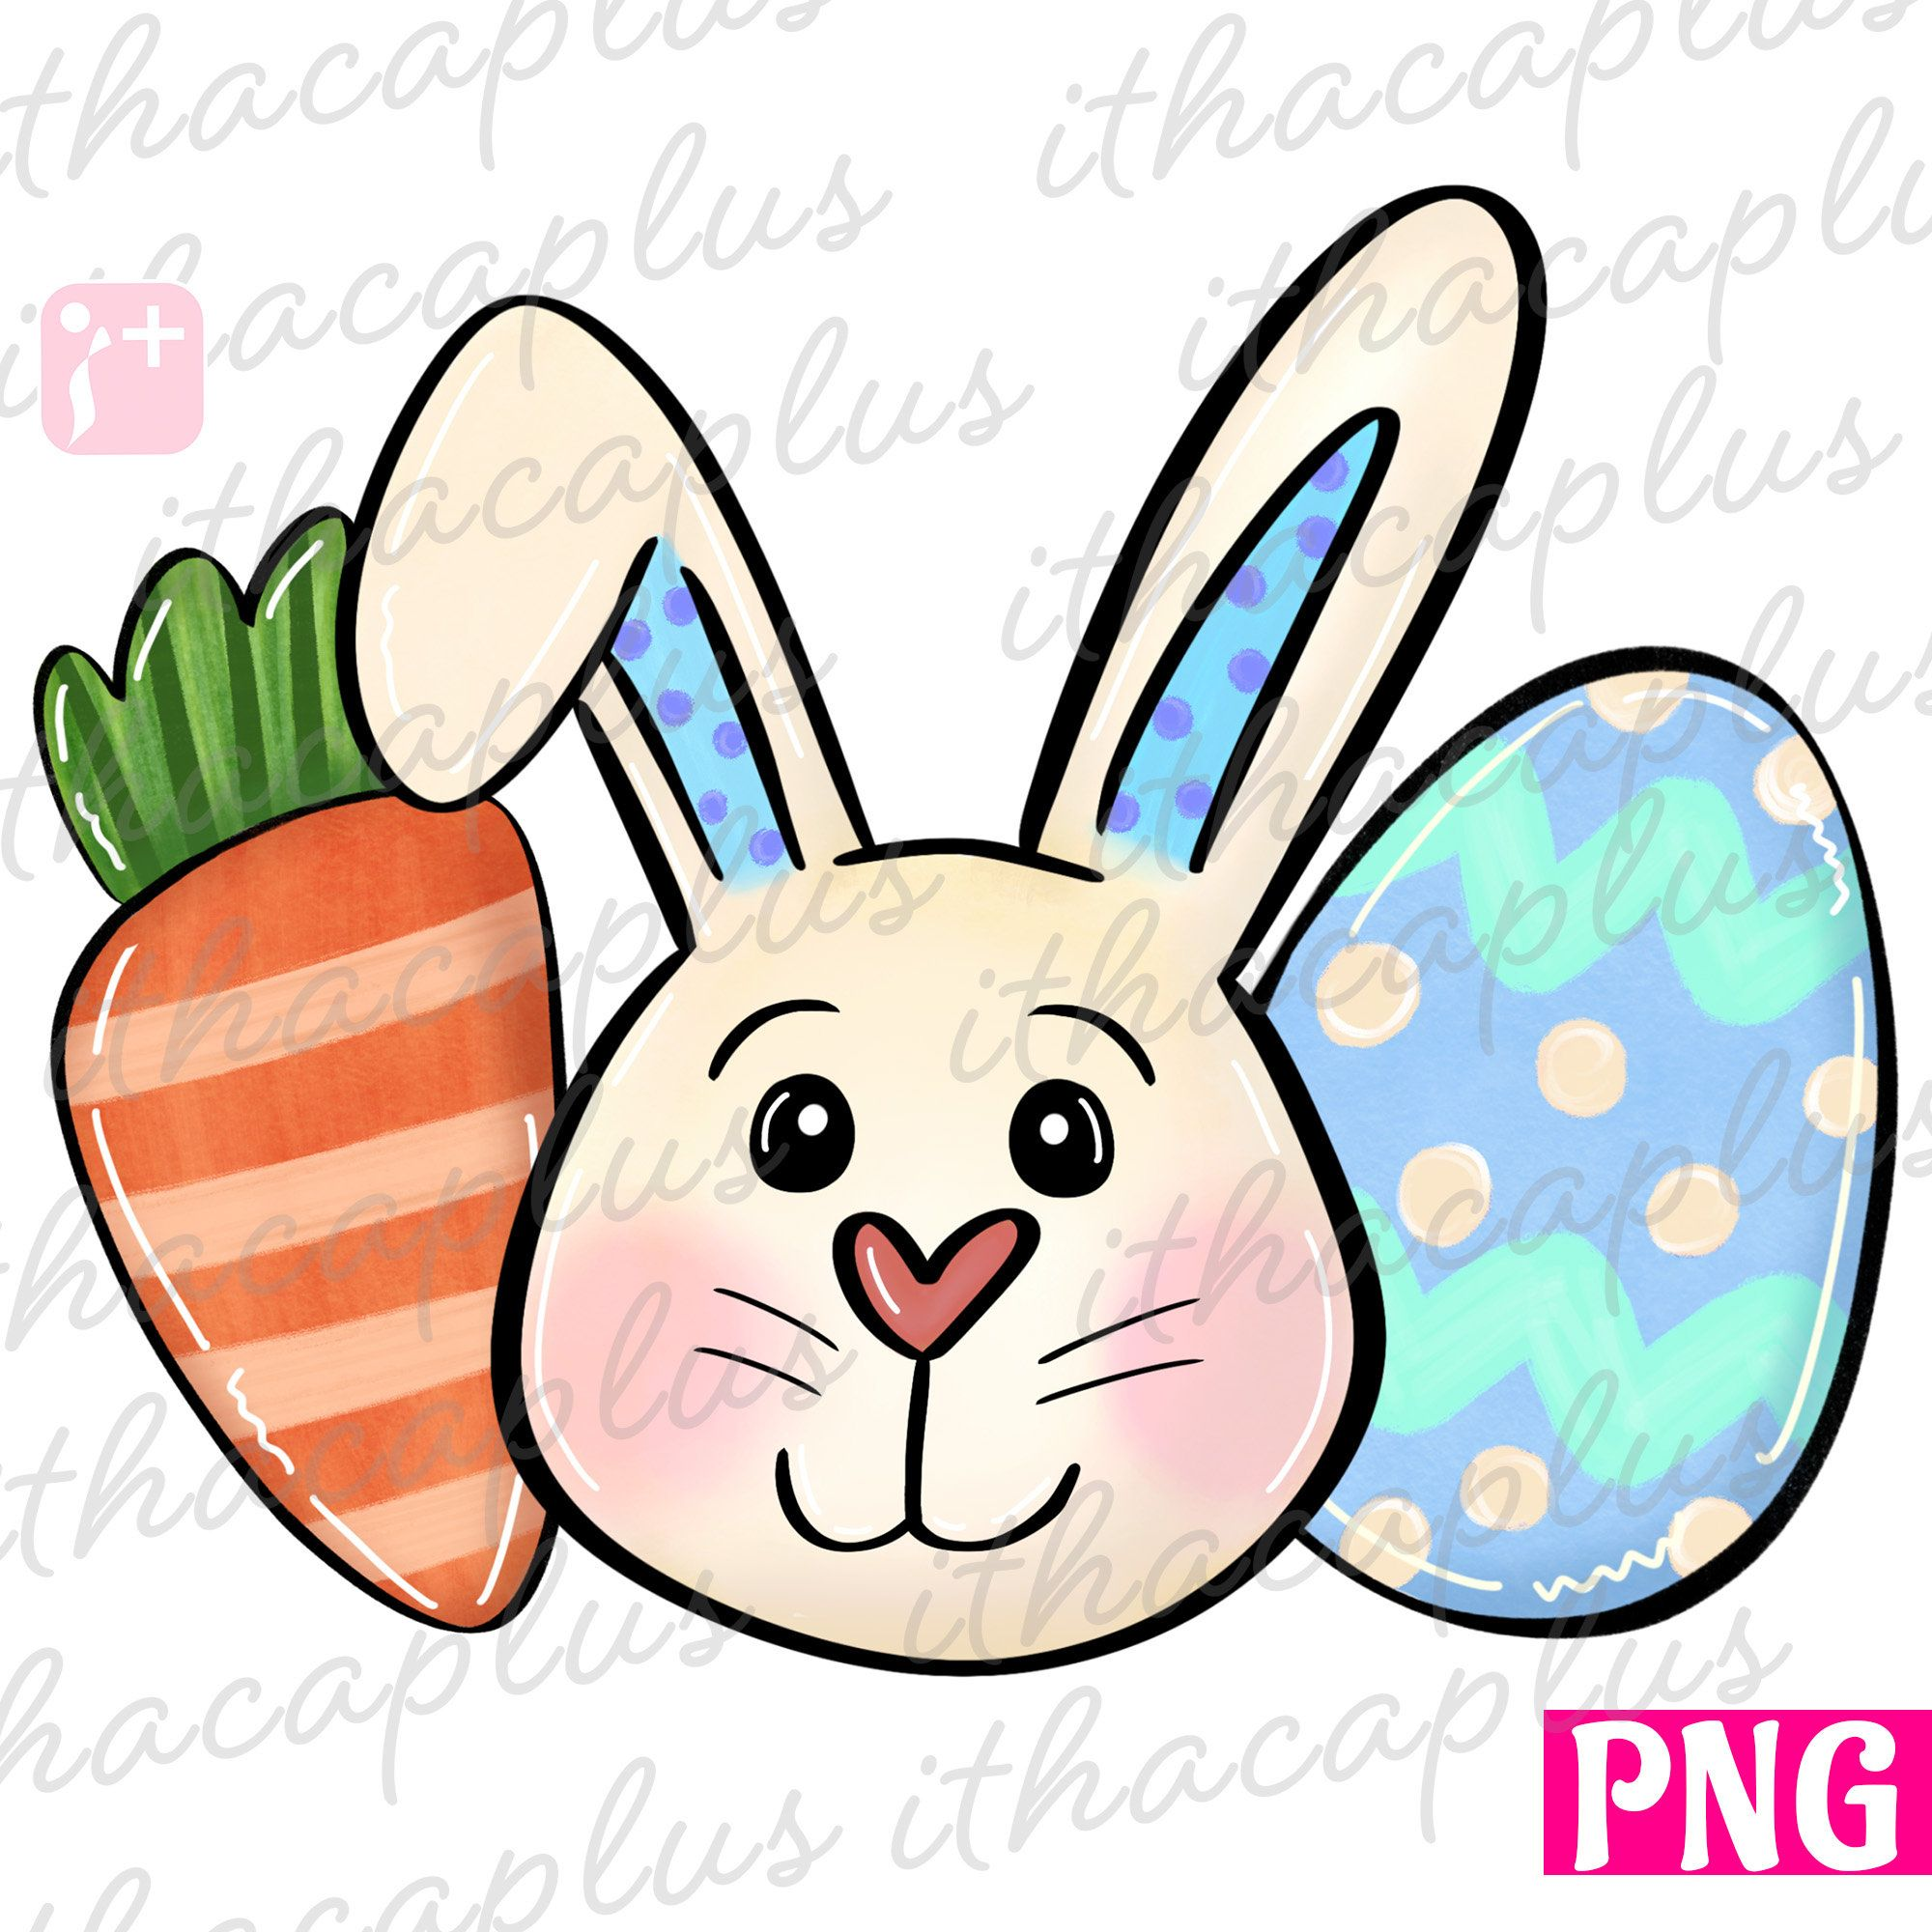 Easter Bunny Png Easter Carrot Png Easter Bunny Sublimation Easter Egg Clipart Easter Bunny Printable Colorful Carrot Png Easter Coloring Pages Printable Easter Drawings Easter Coloring Pages